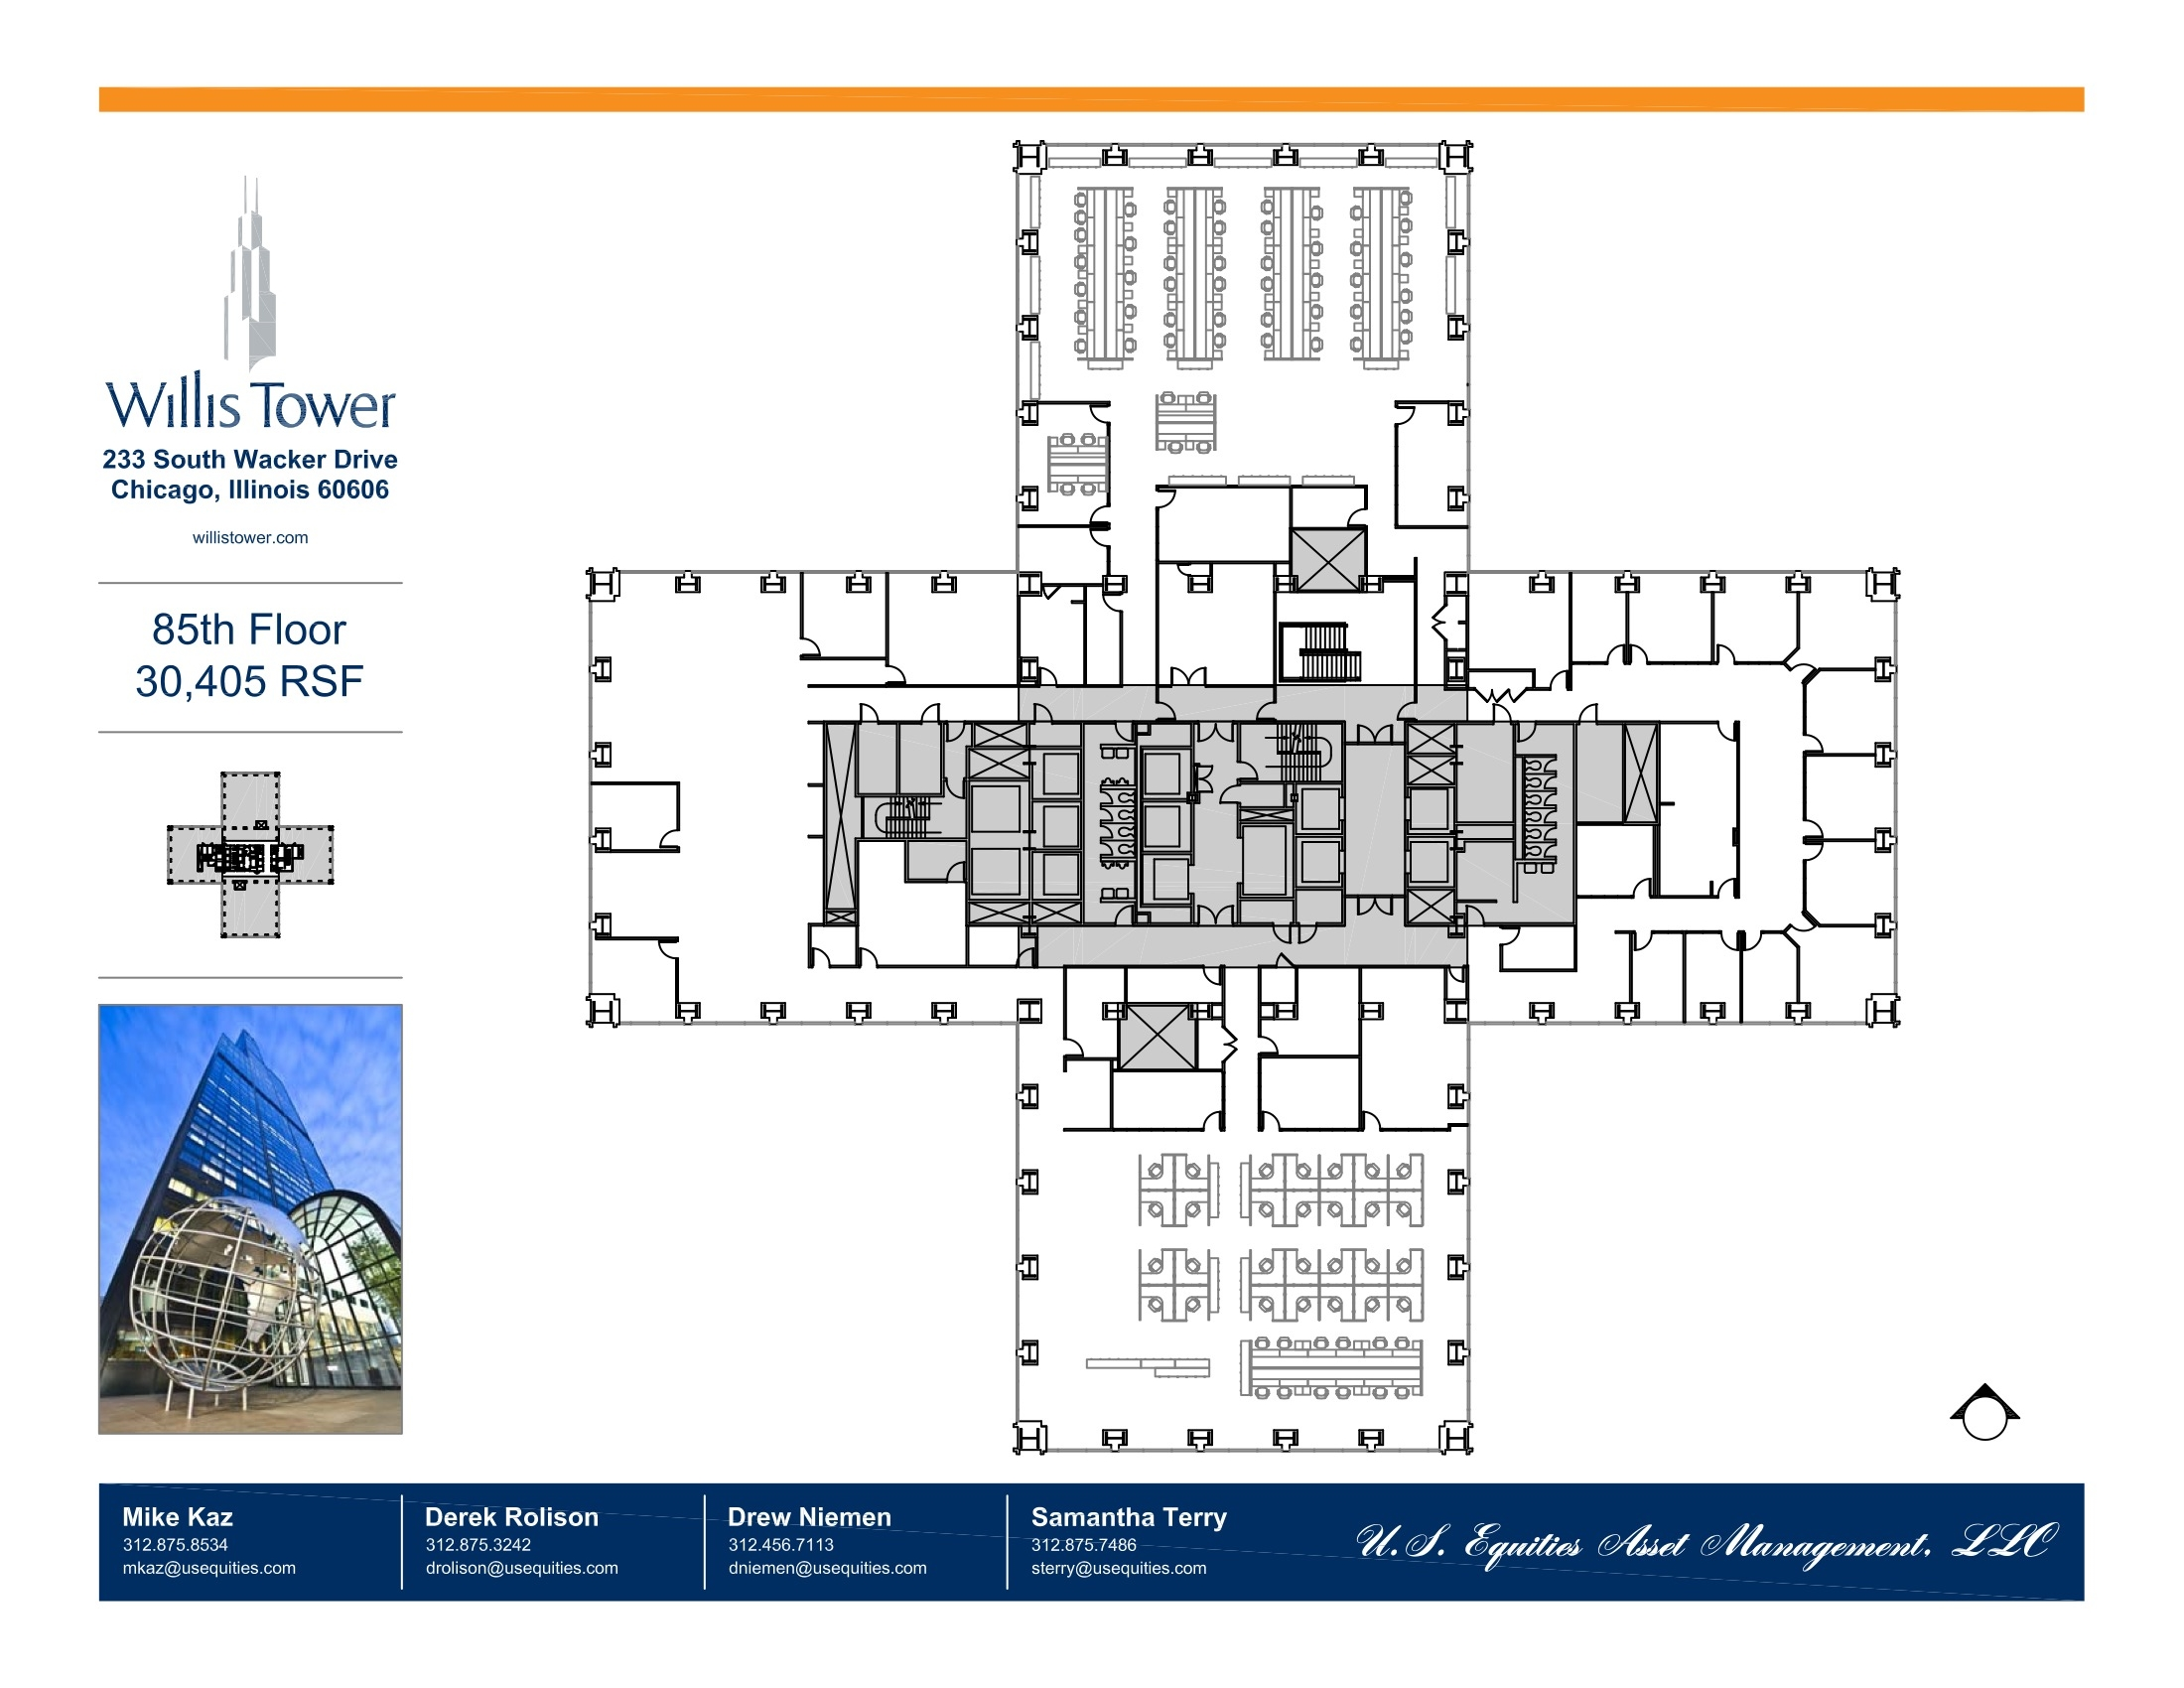 willis tower floor plans chicago il usa pics photos sears house plans index use this directory